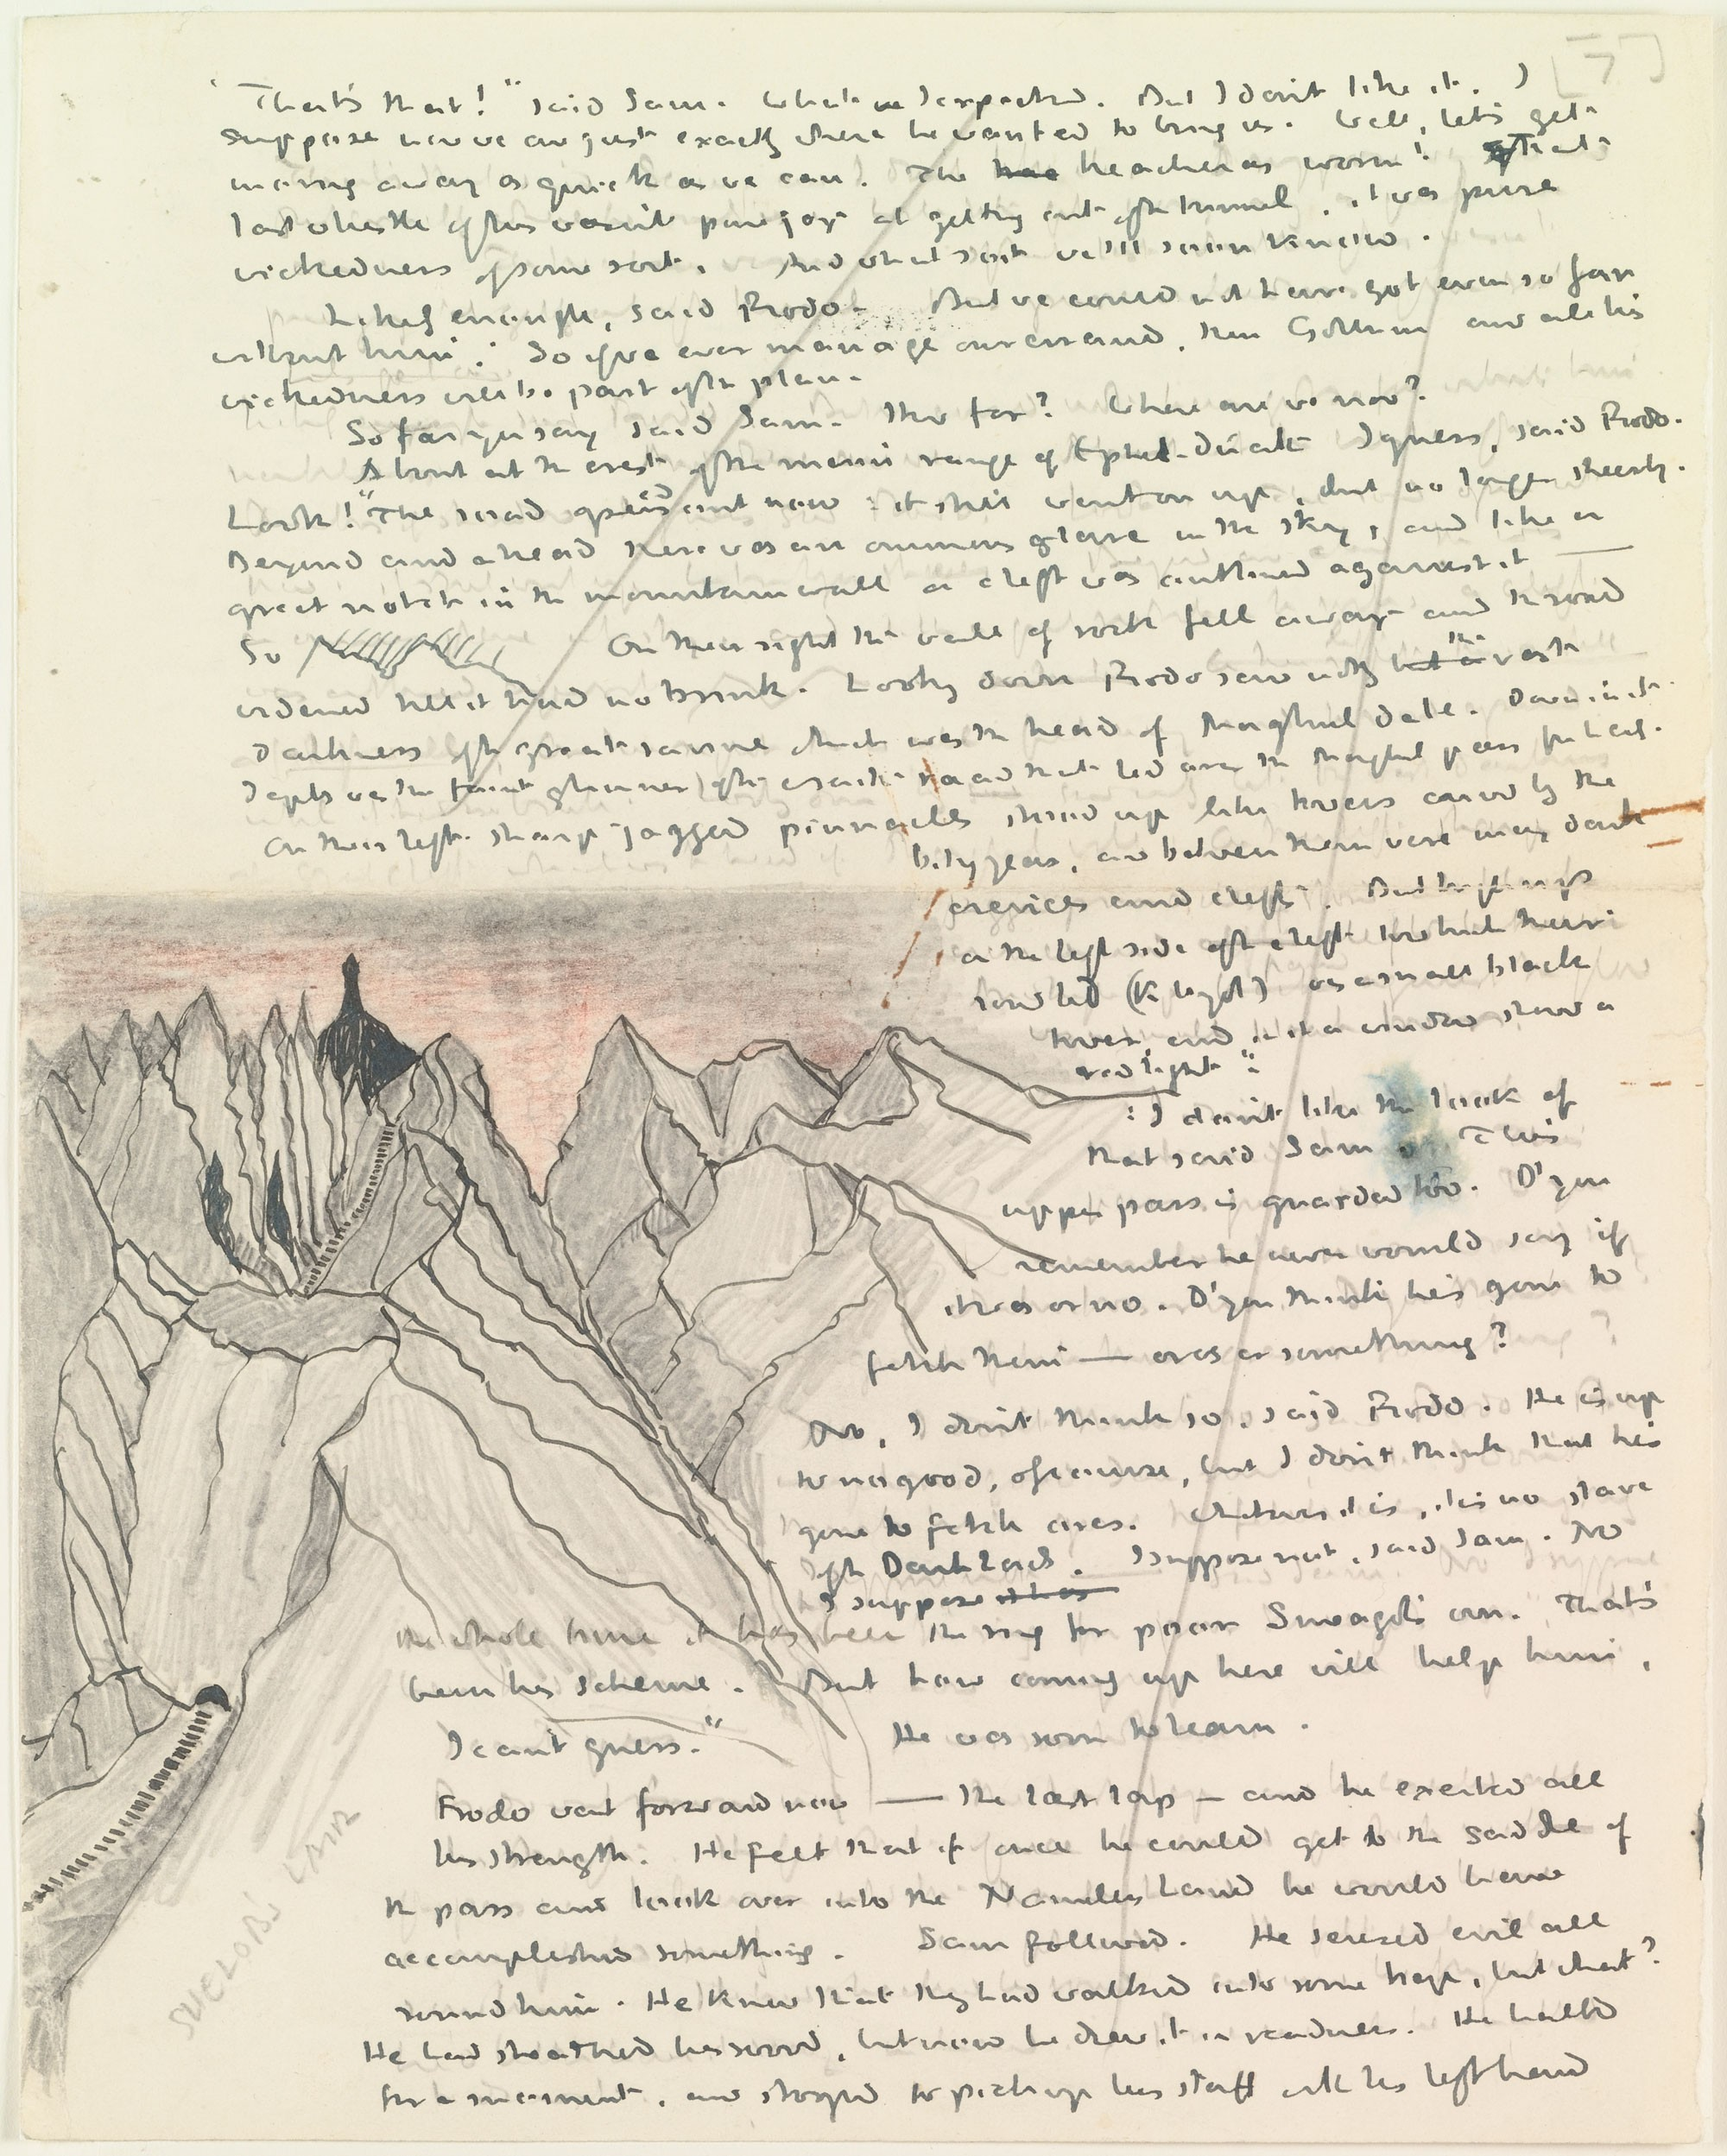 JRR Tolkiens original first page for Lord of the Rings